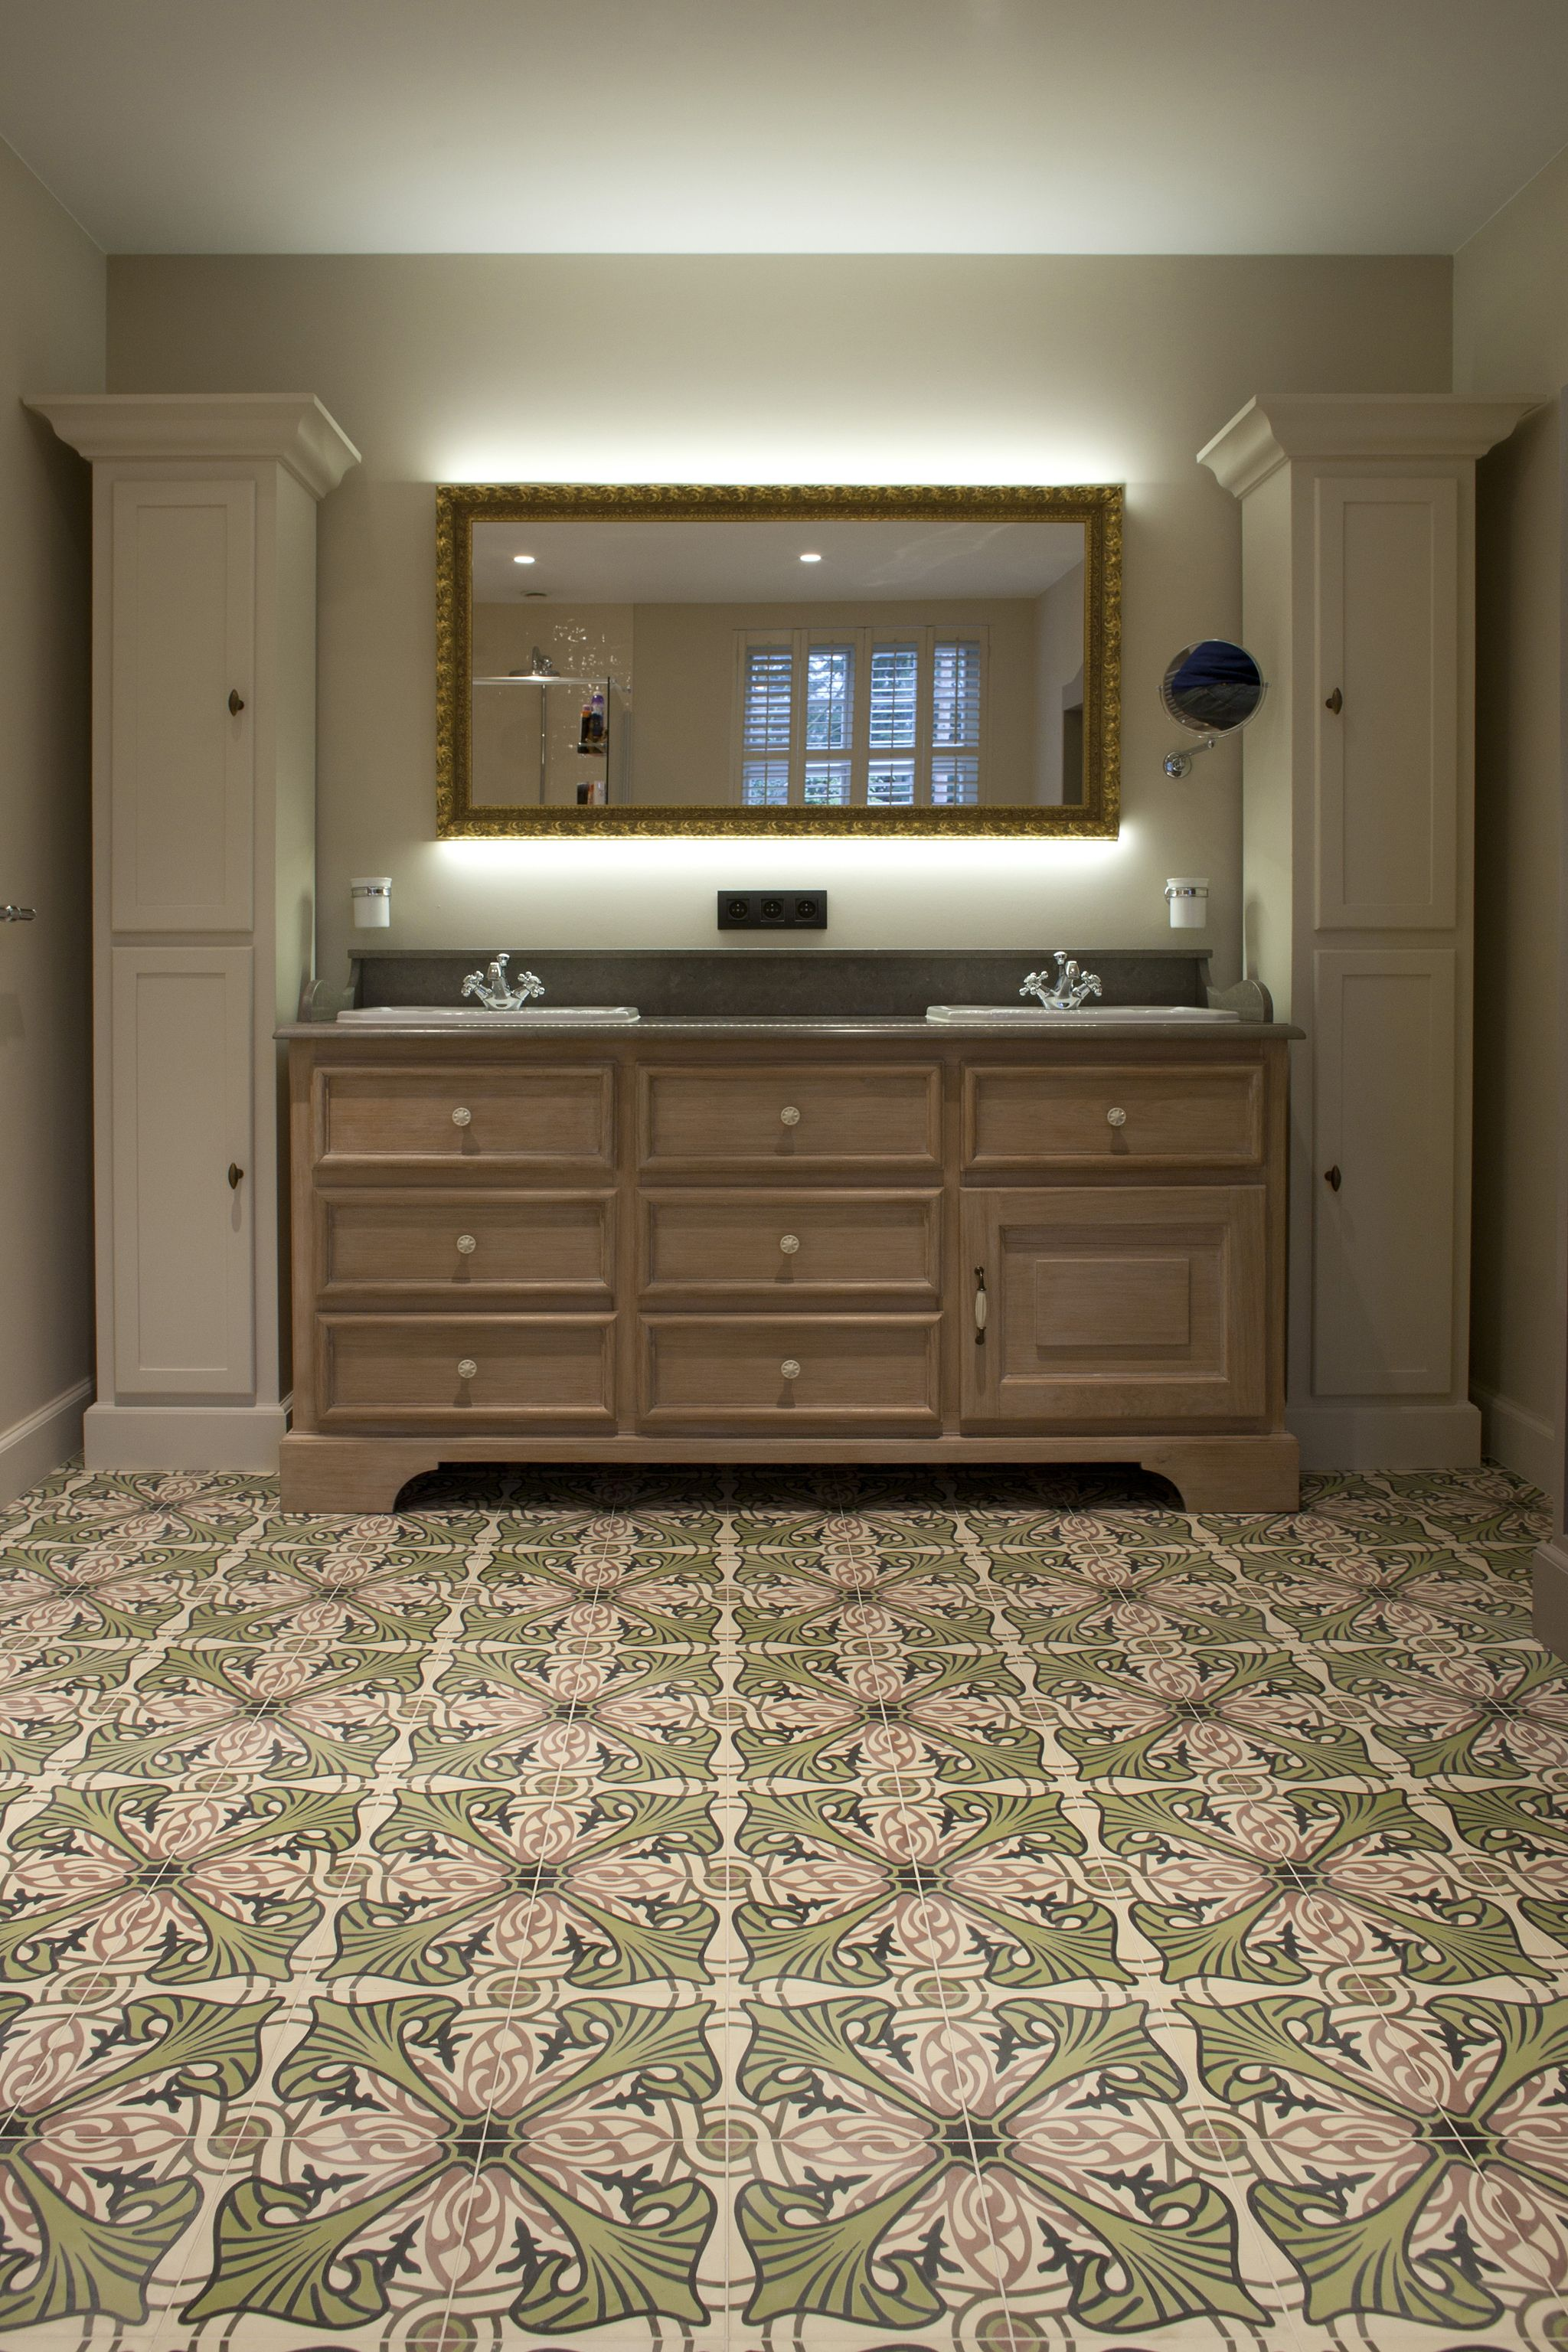 carreaux ciment majorelle vert anis carrelages du marais cdm se met au vert pinterest. Black Bedroom Furniture Sets. Home Design Ideas